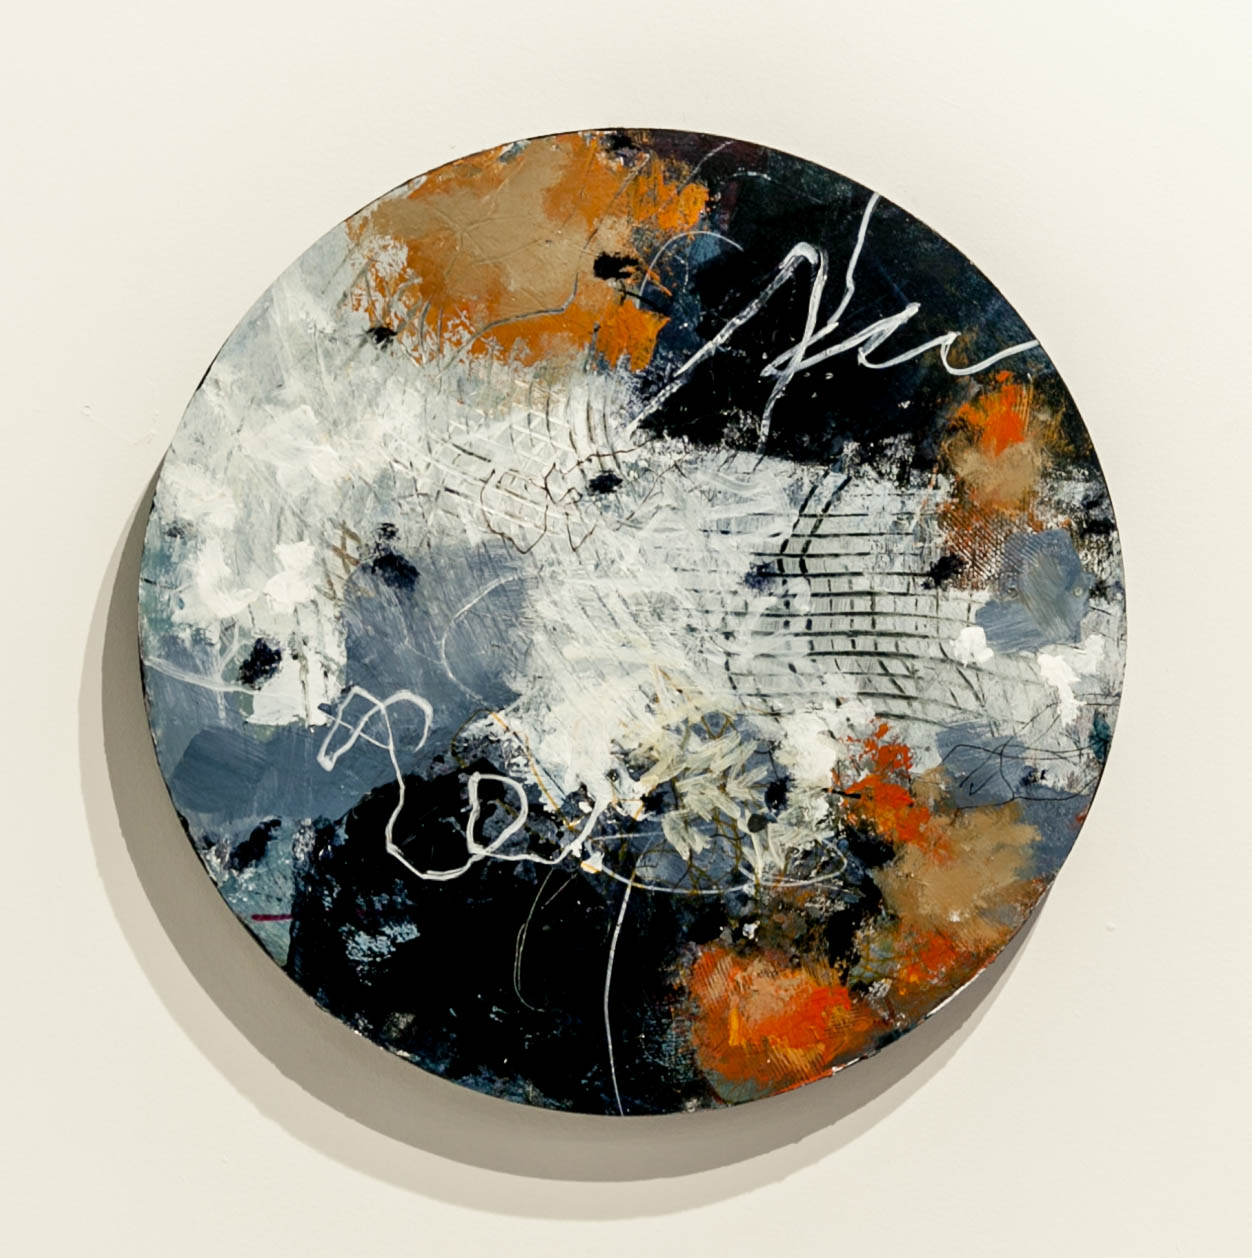 29. SOLD Talulah Belle Lautrec-Nunes, The Invisible Circle of Indifference II